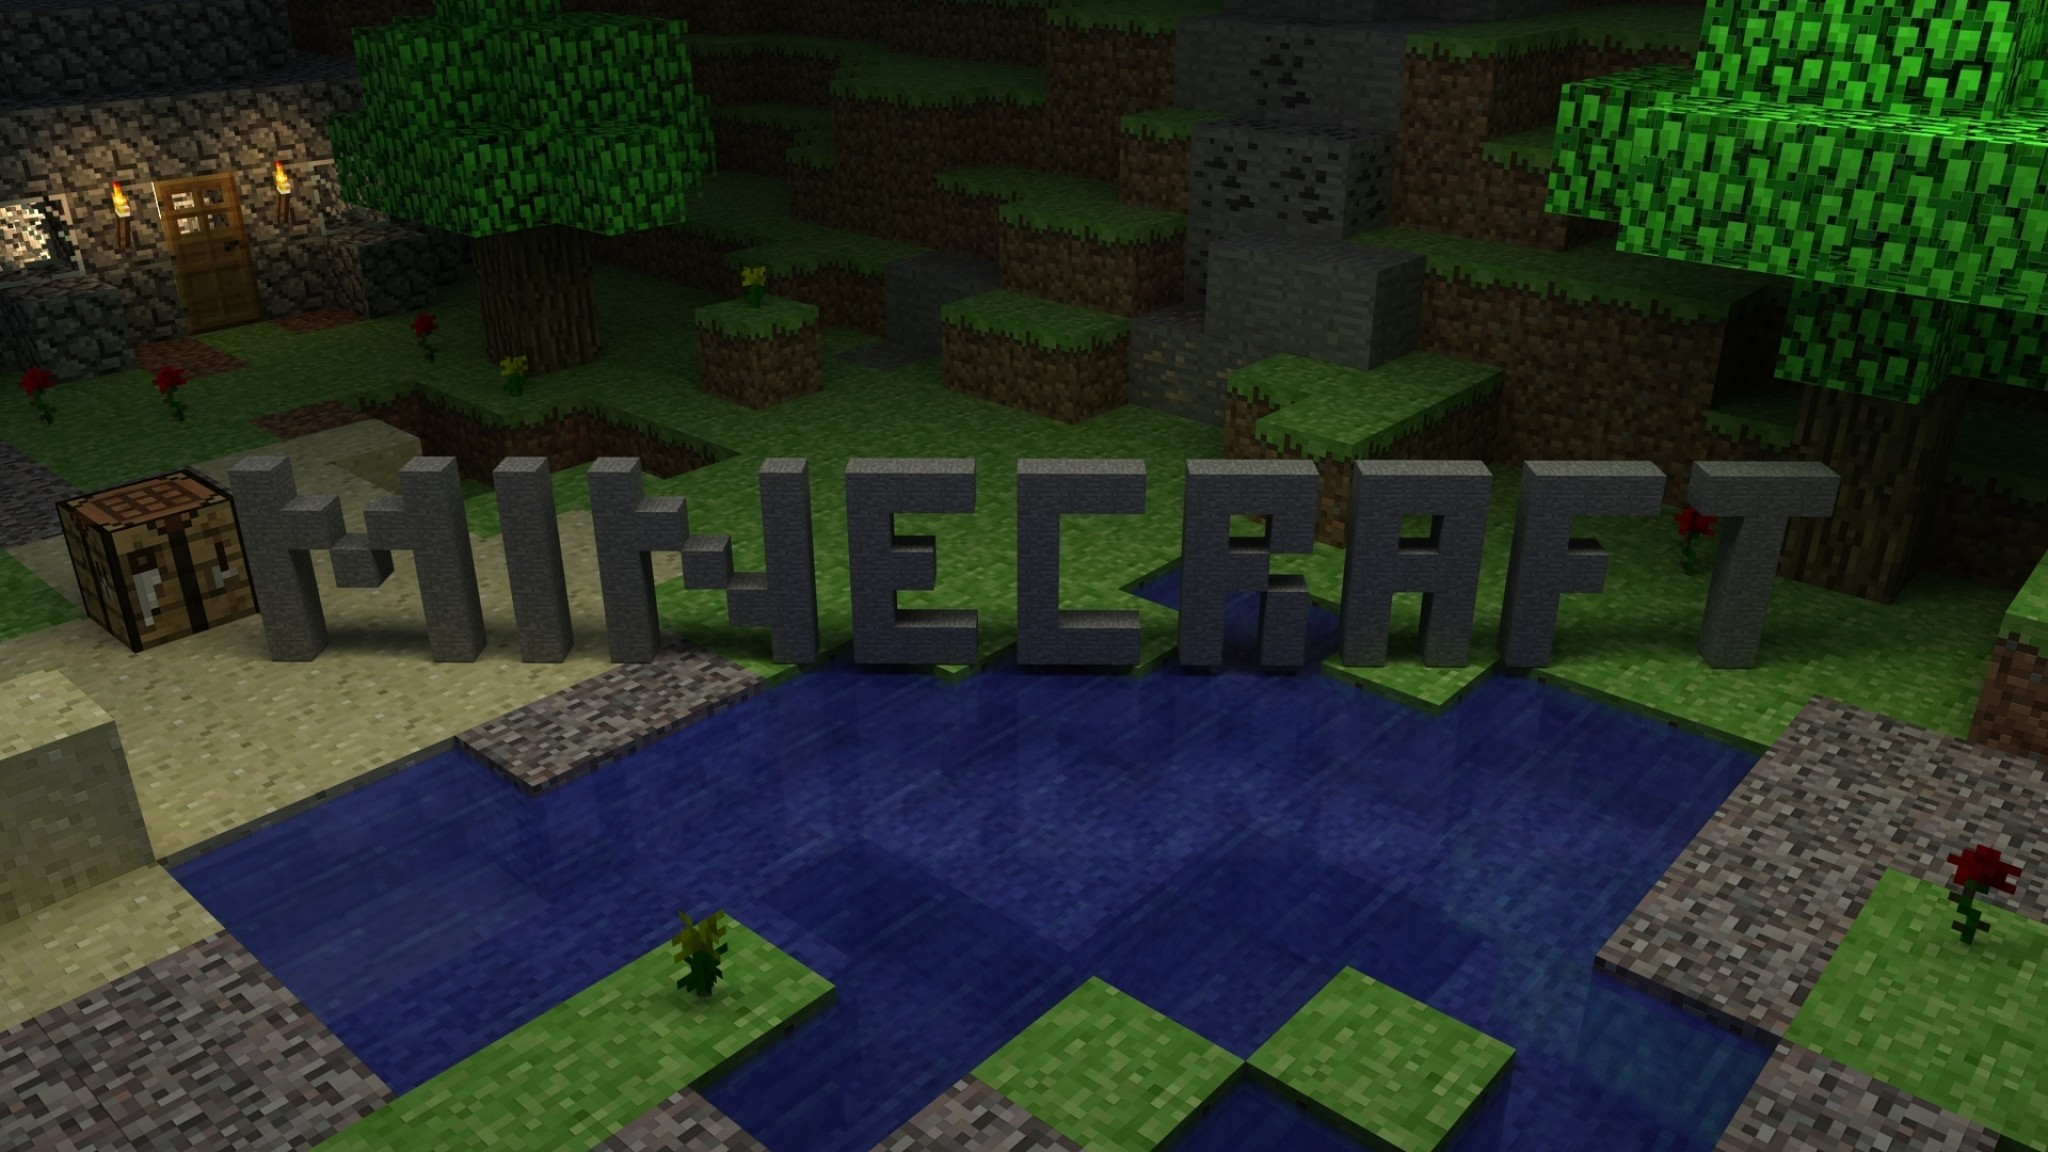 2048x1152 Preview wallpaper minecraft, house, logo, cubes, resources